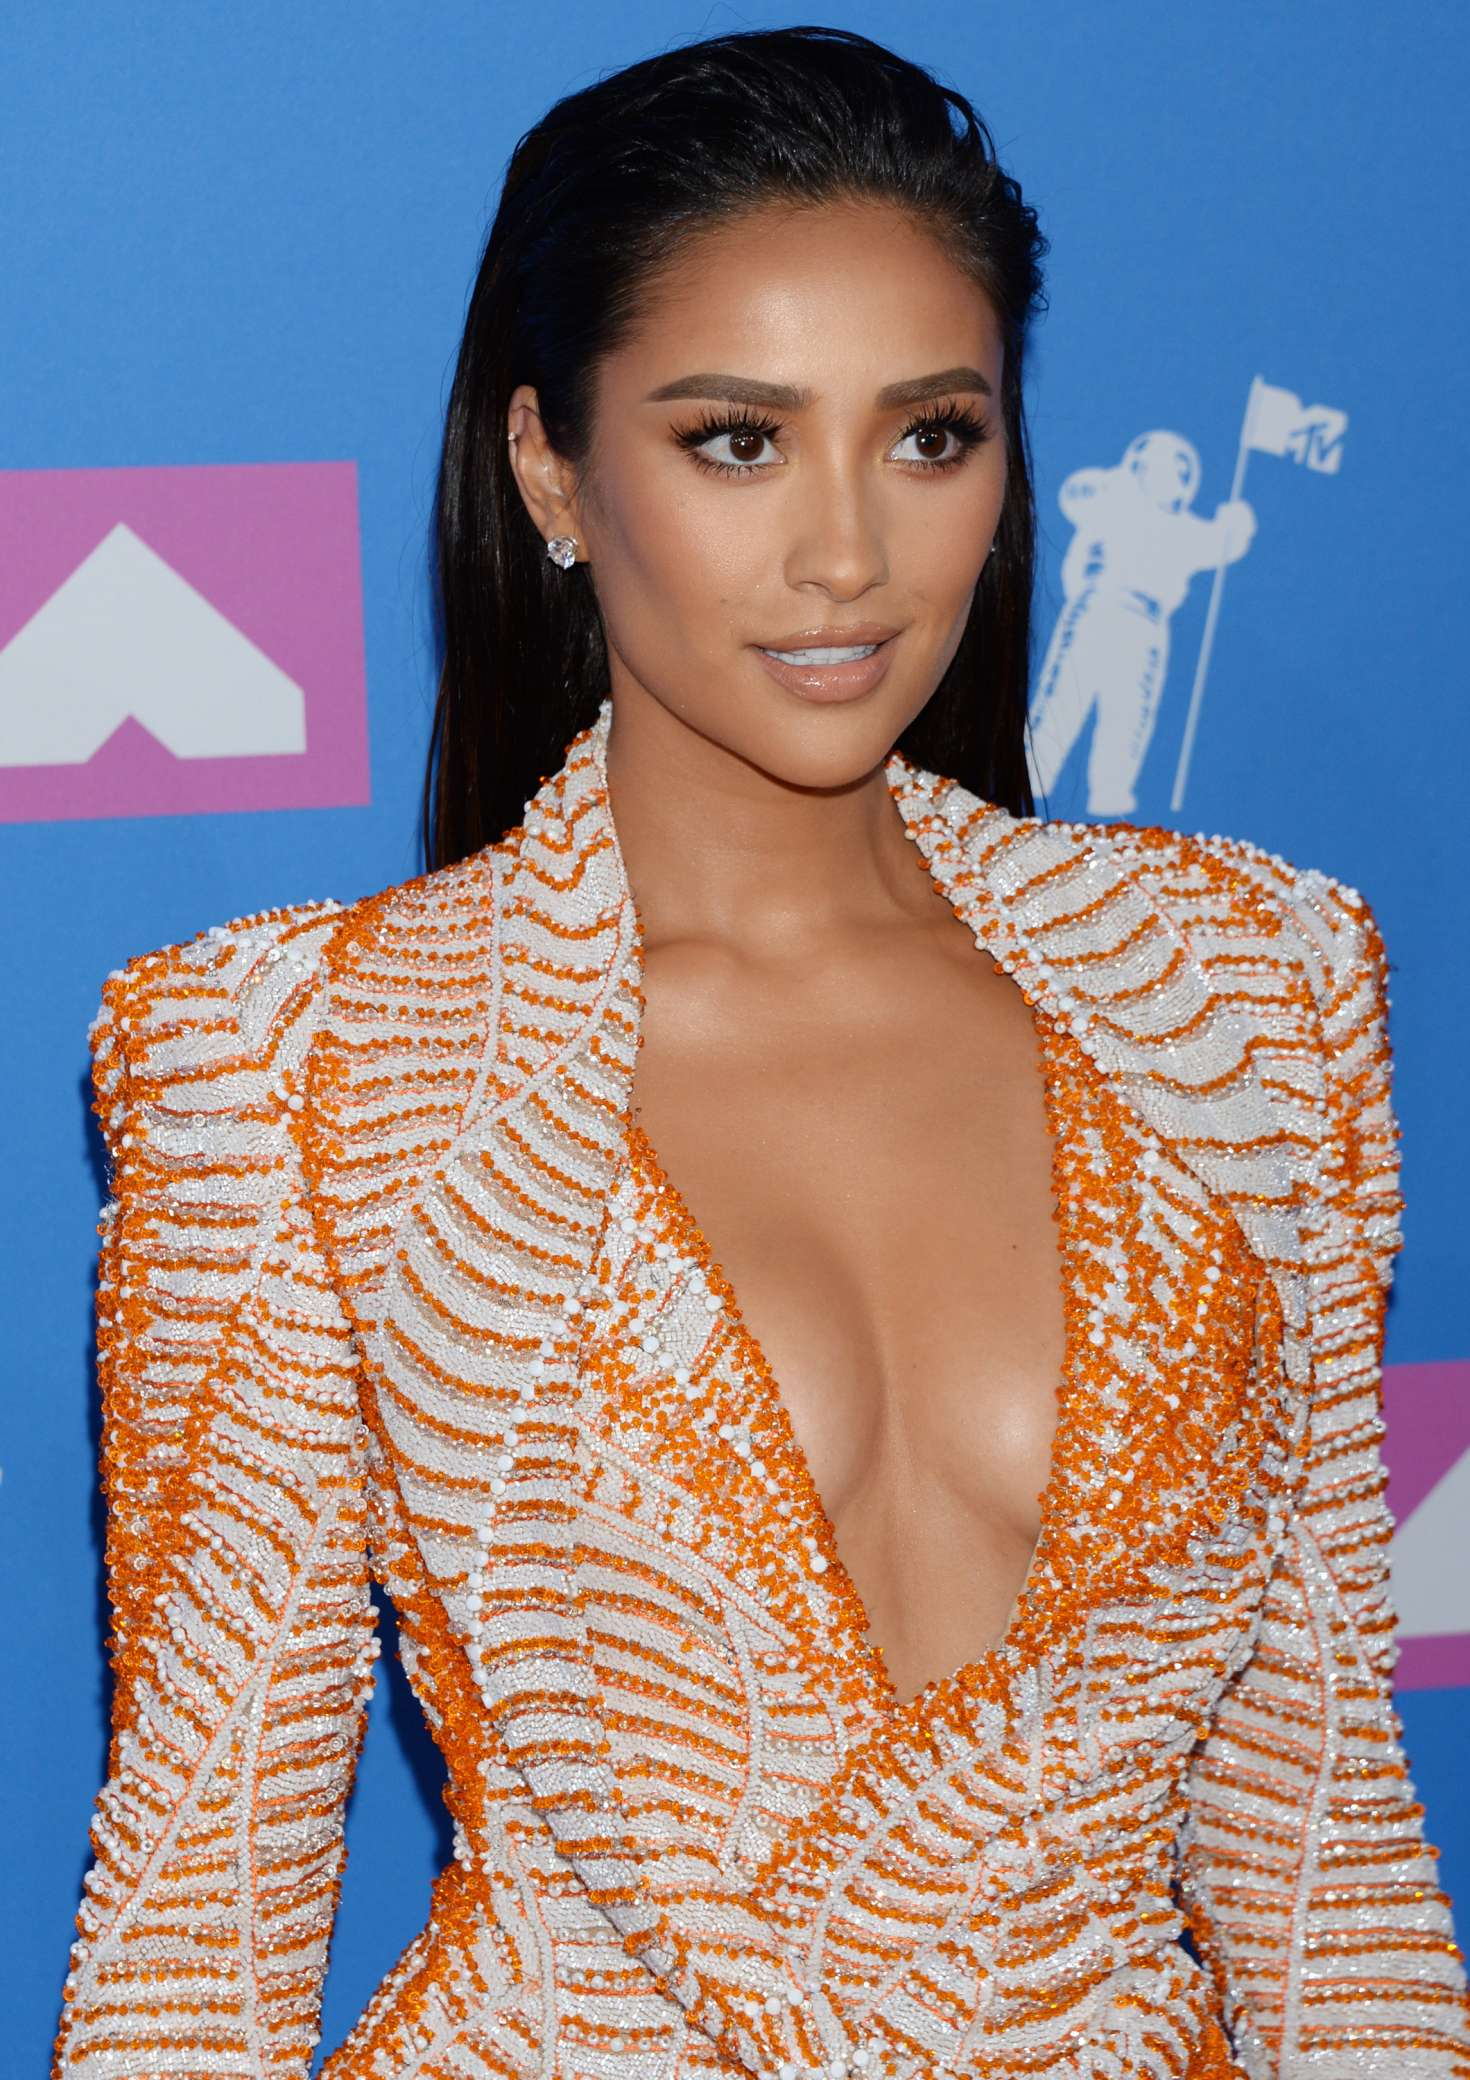 Video Shay Mitchell nudes (34 photo), Topless, Is a cute, Boobs, braless 2020